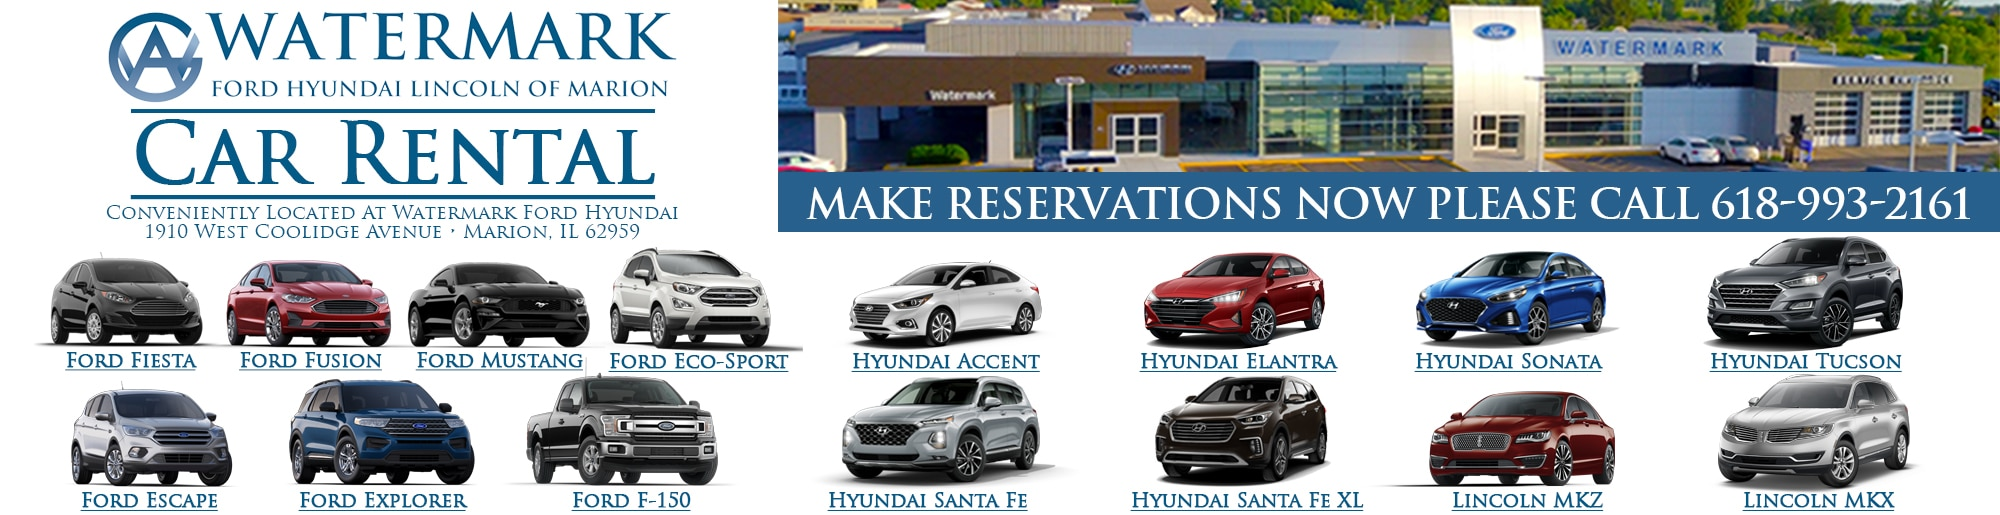 Watermark Ford of Marion | Ford Dealership in Marion IL